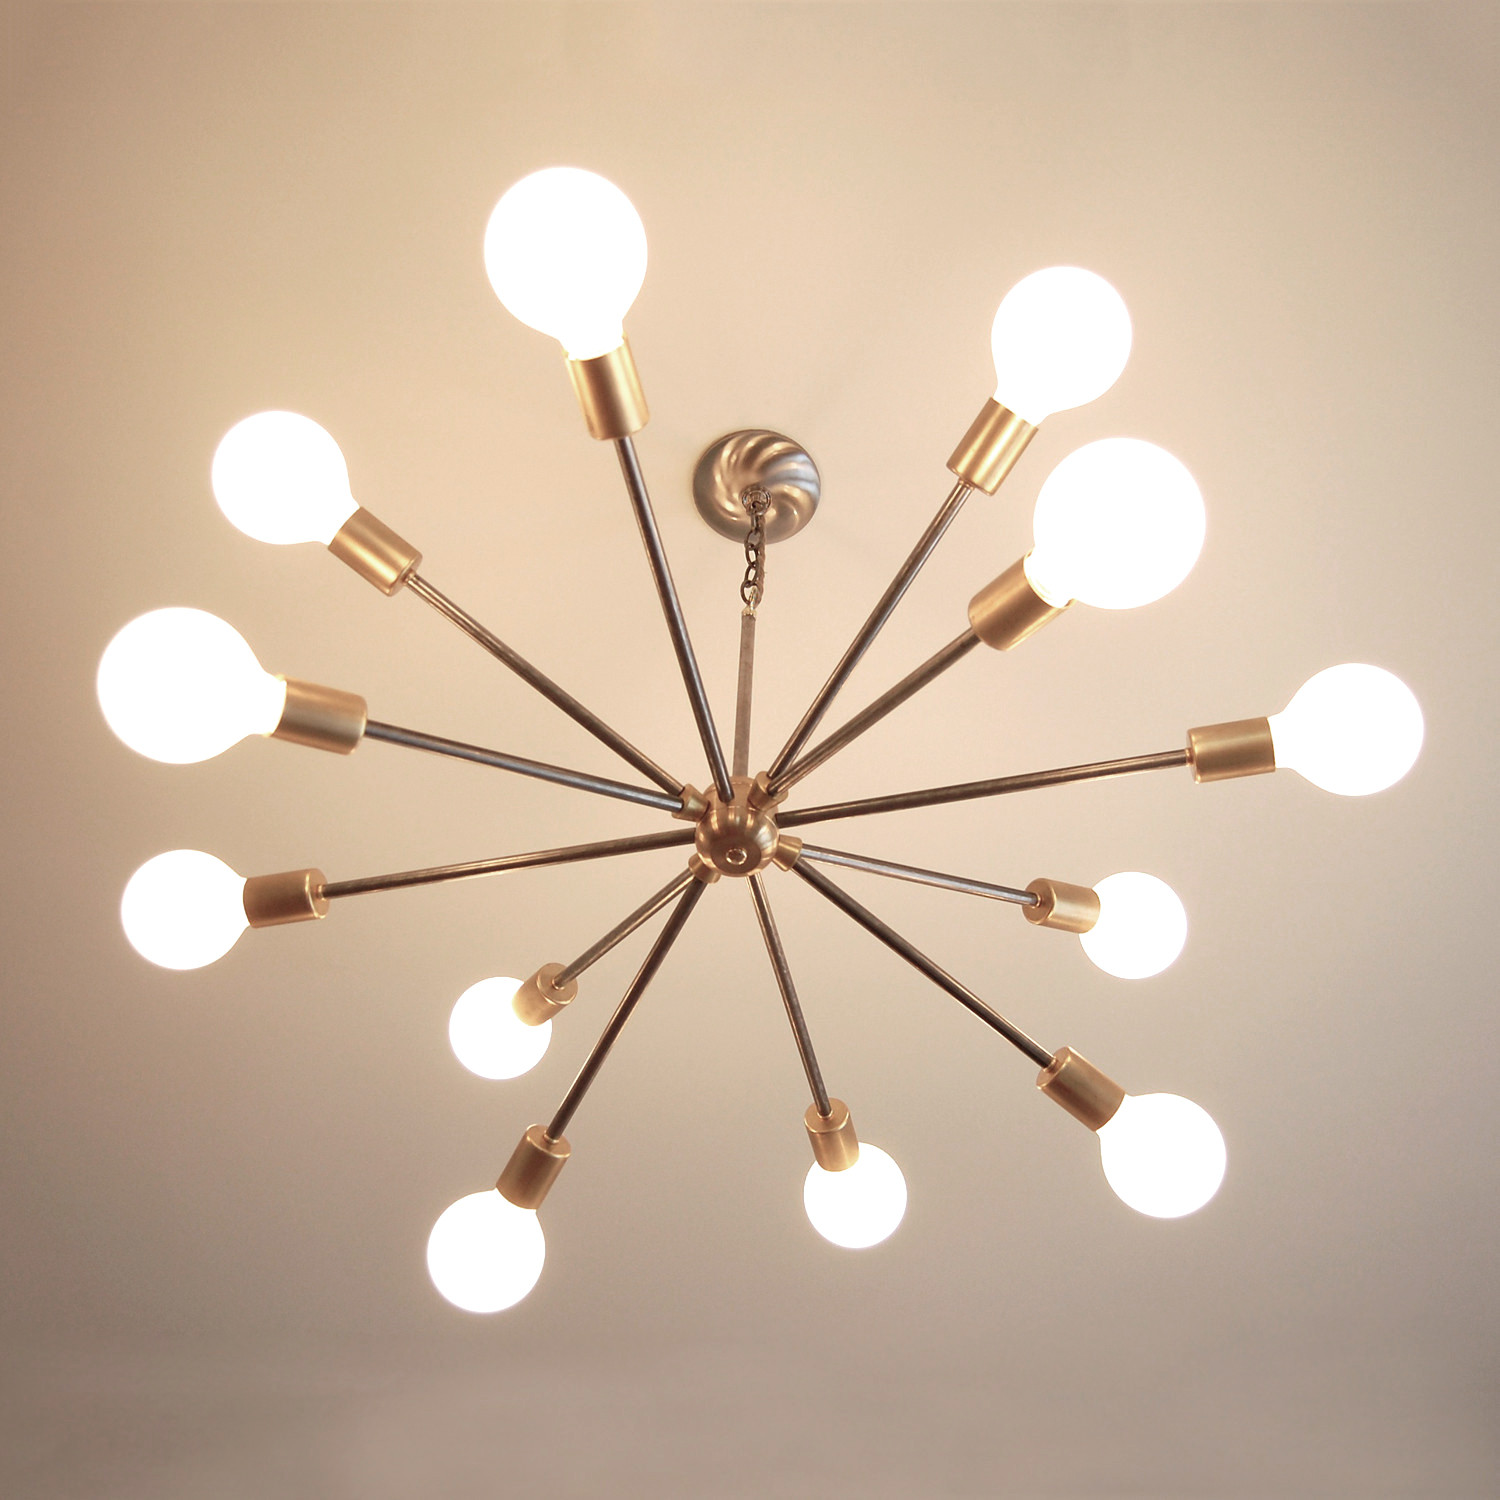 Mid century sputnik inspired chandelier southern lights electric mid century sputnik inspired chandelier aloadofball Images